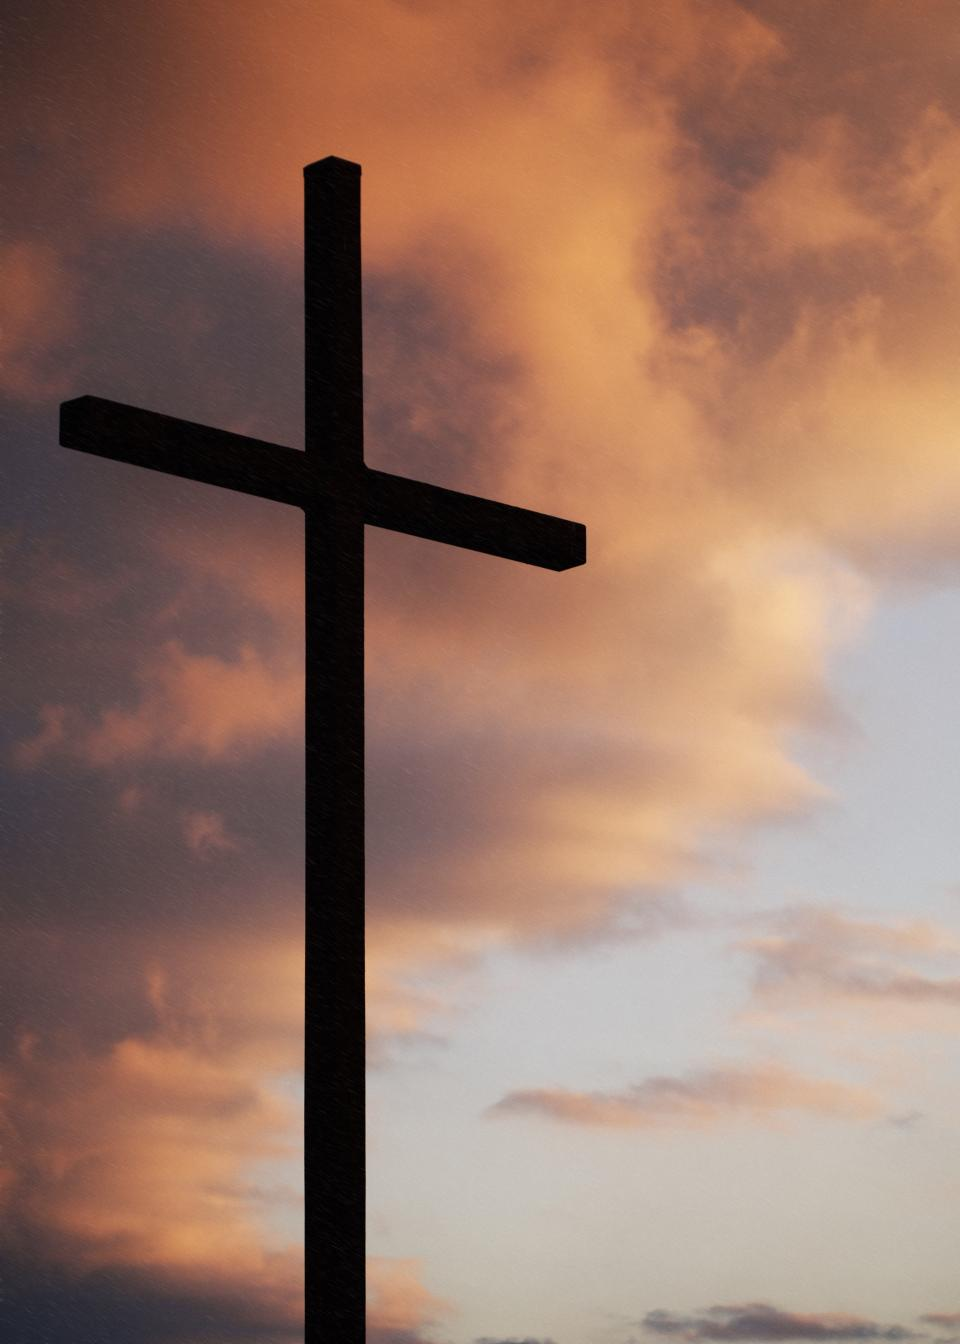 cross religion silhouette shadow sky clouds church